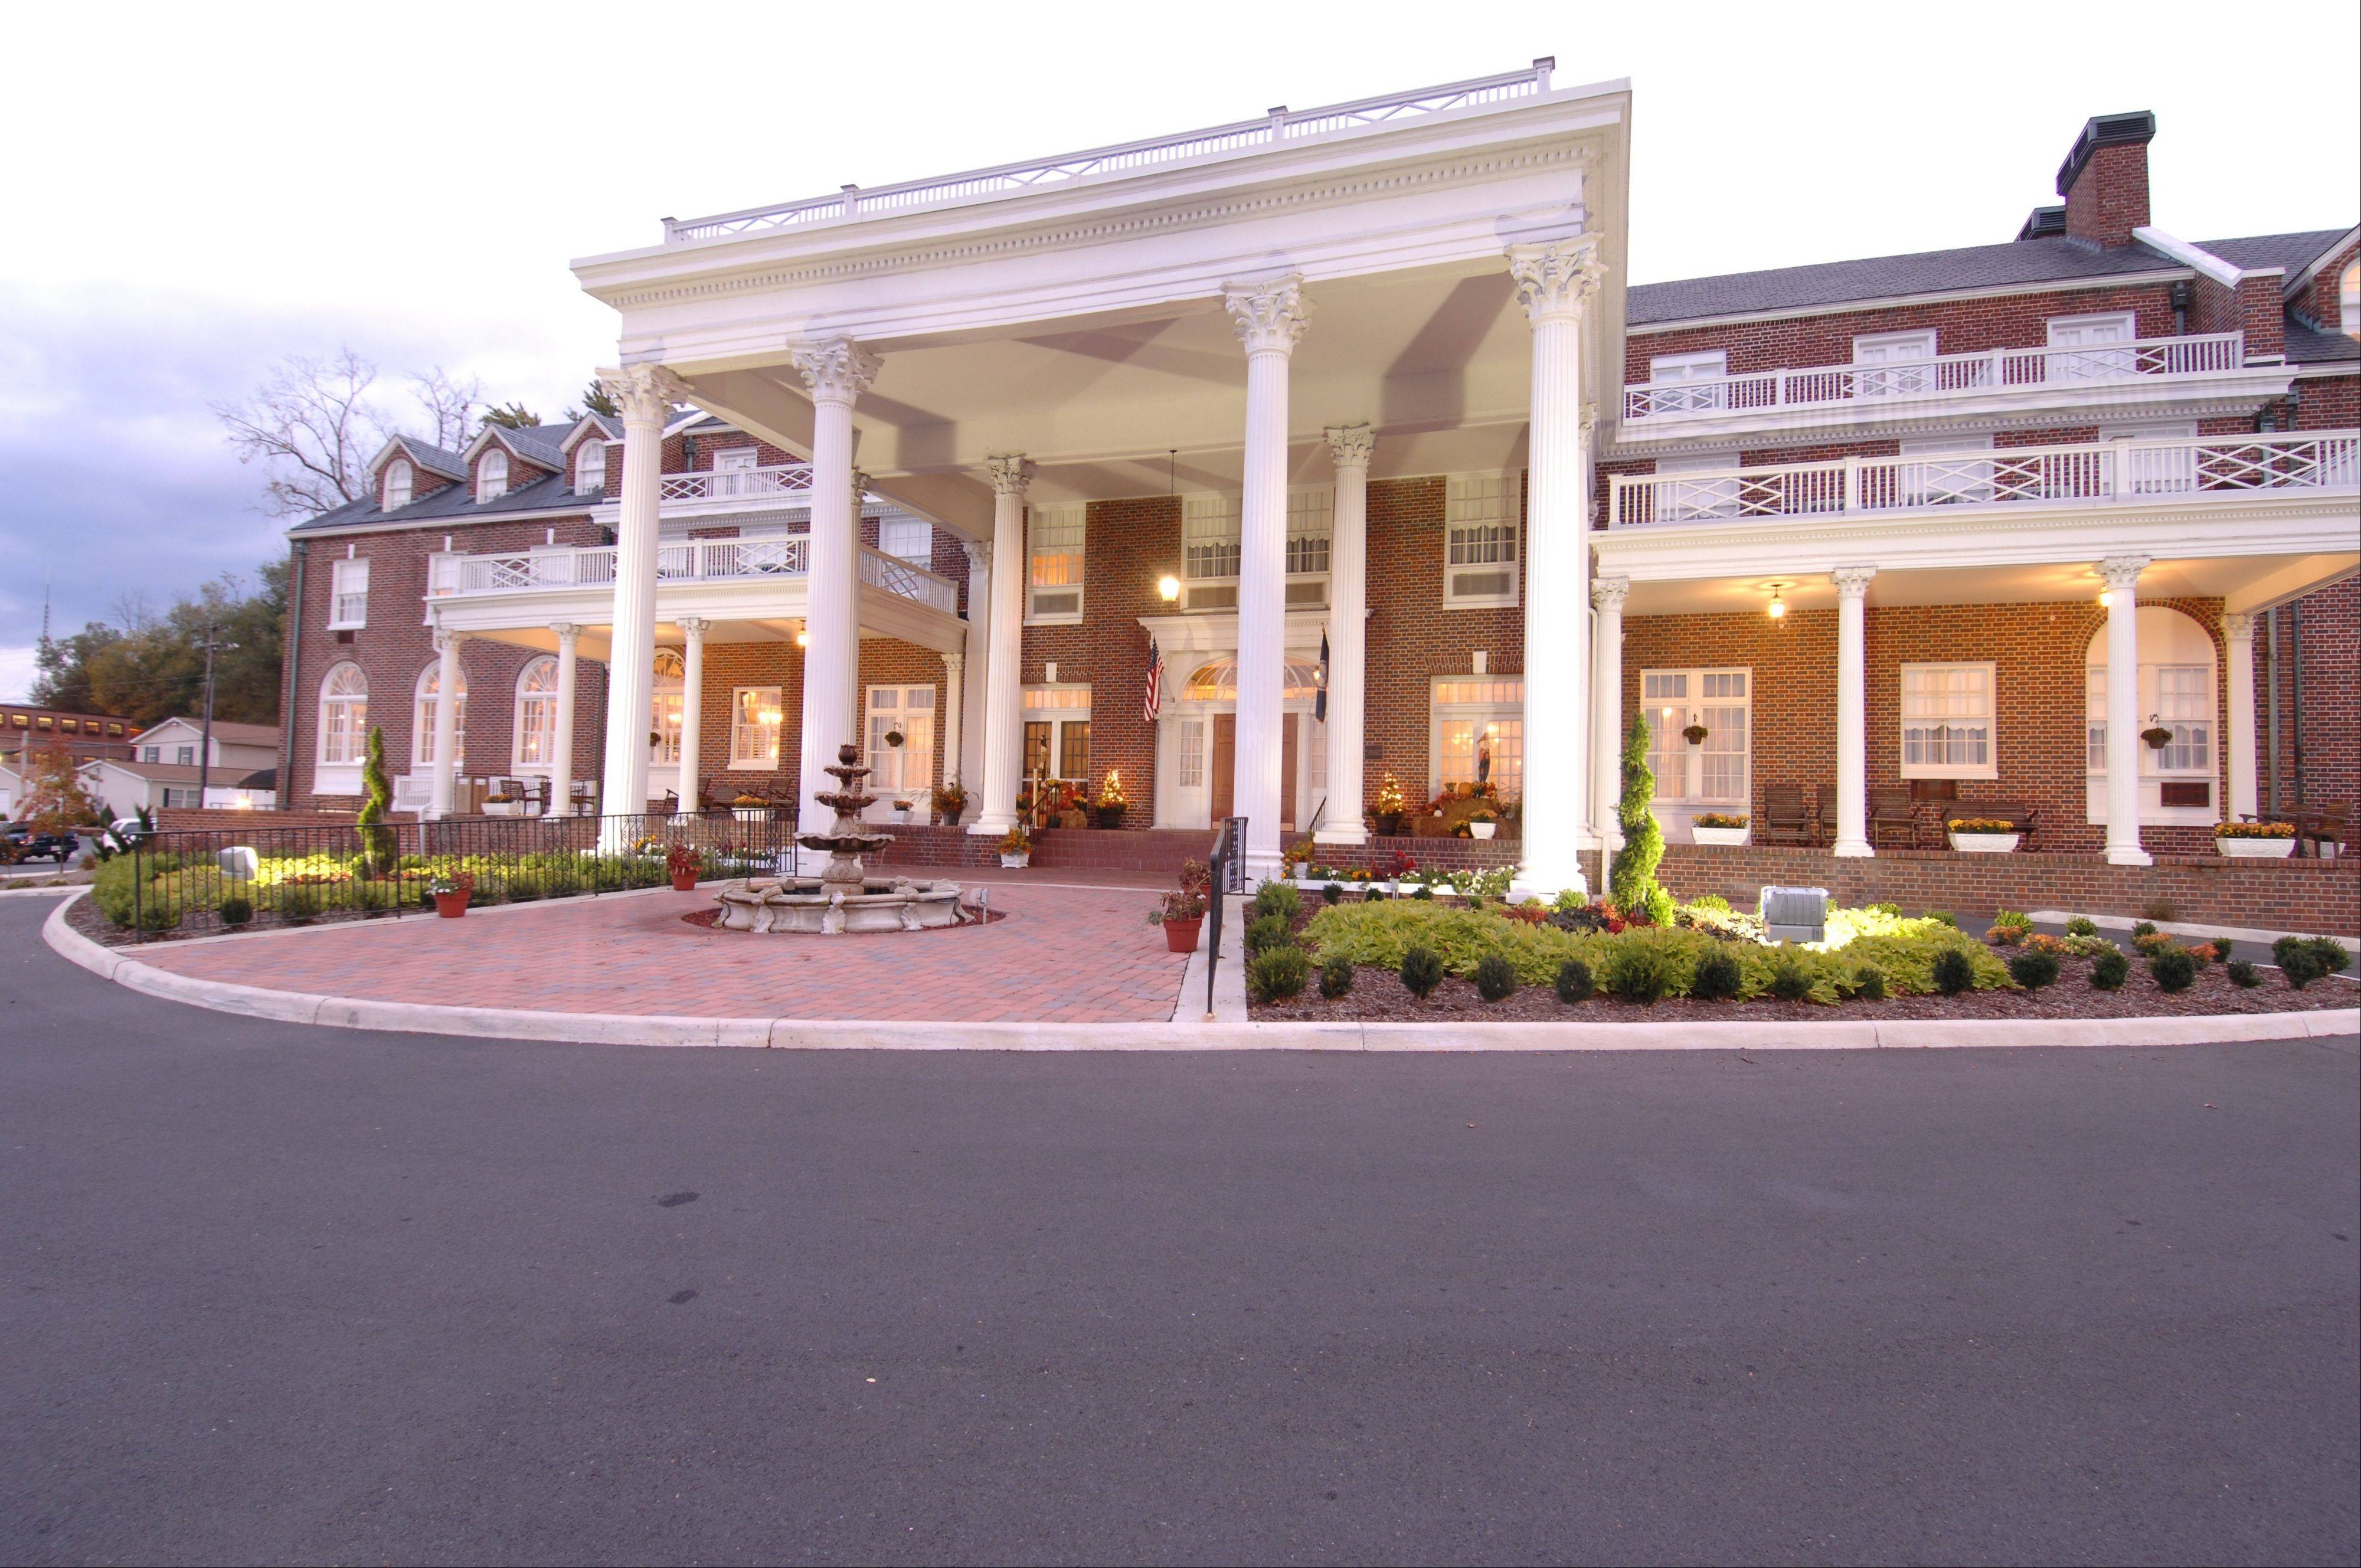 It's important to do your homework when planning a stay at a historic hotel or inn such as the Mimslyn Inn in Luray, Va.